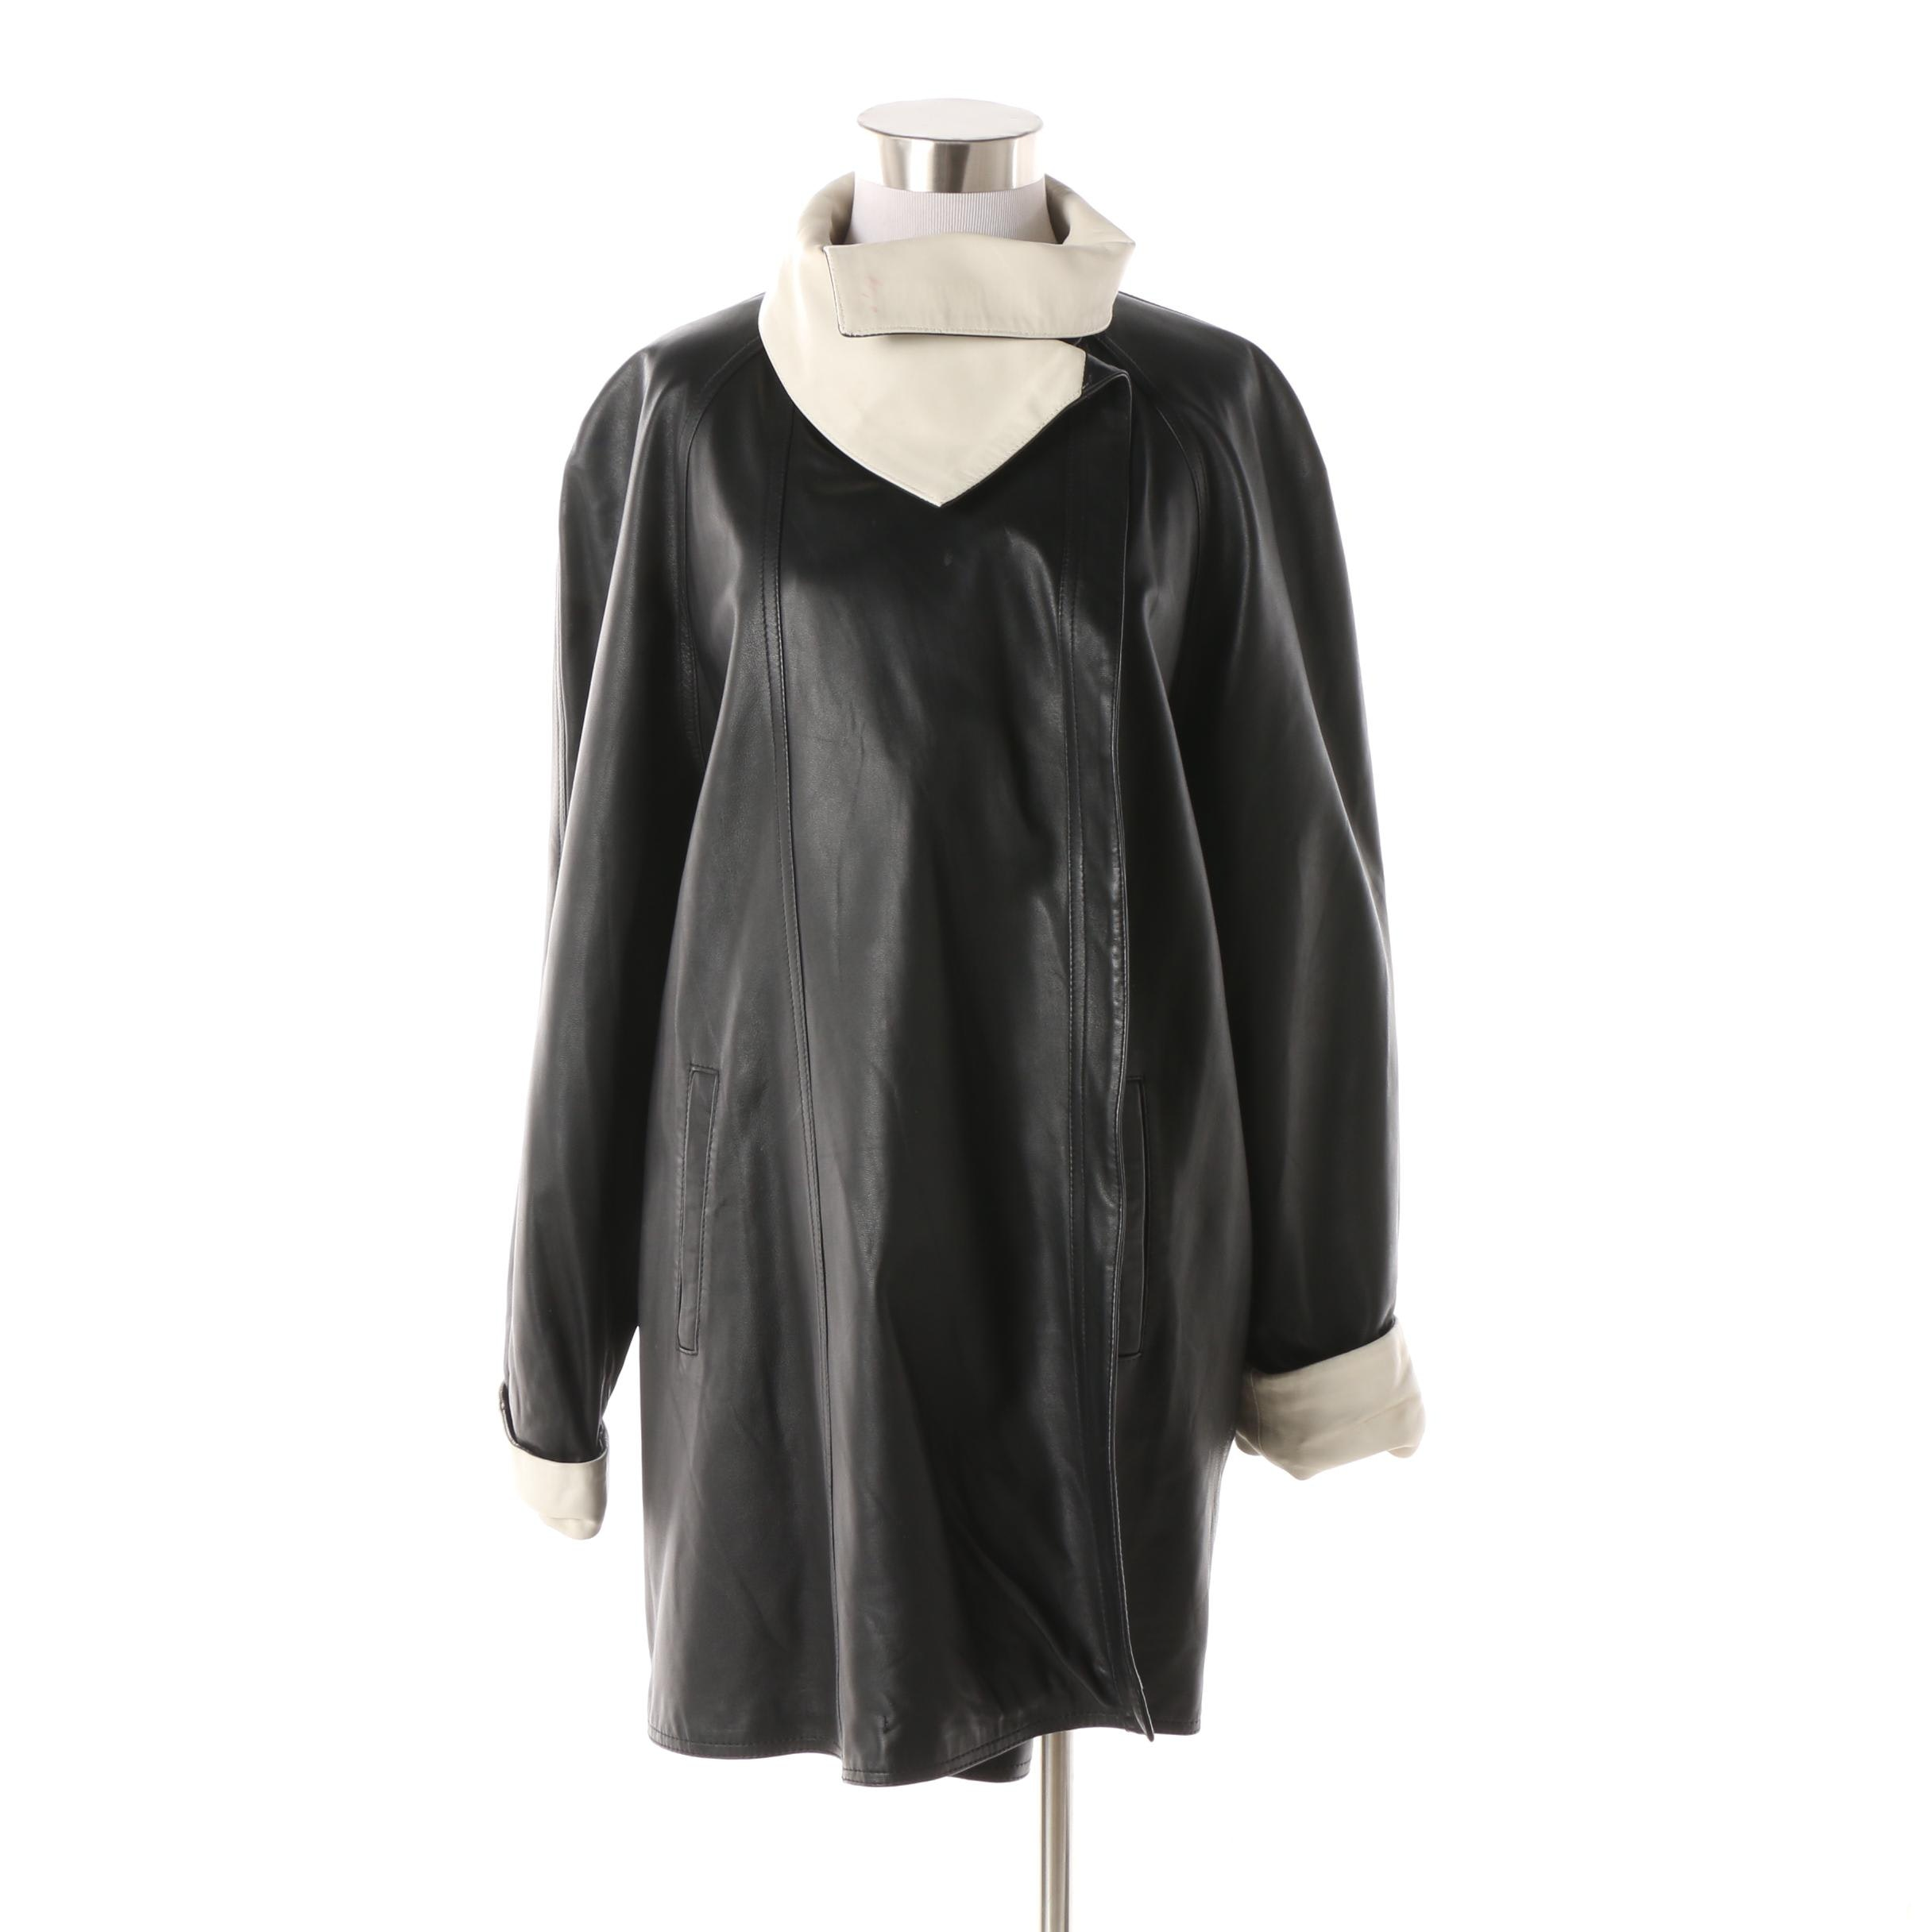 Women's Vintage Vera Pelle Black Leather Swing Coat with White Trim